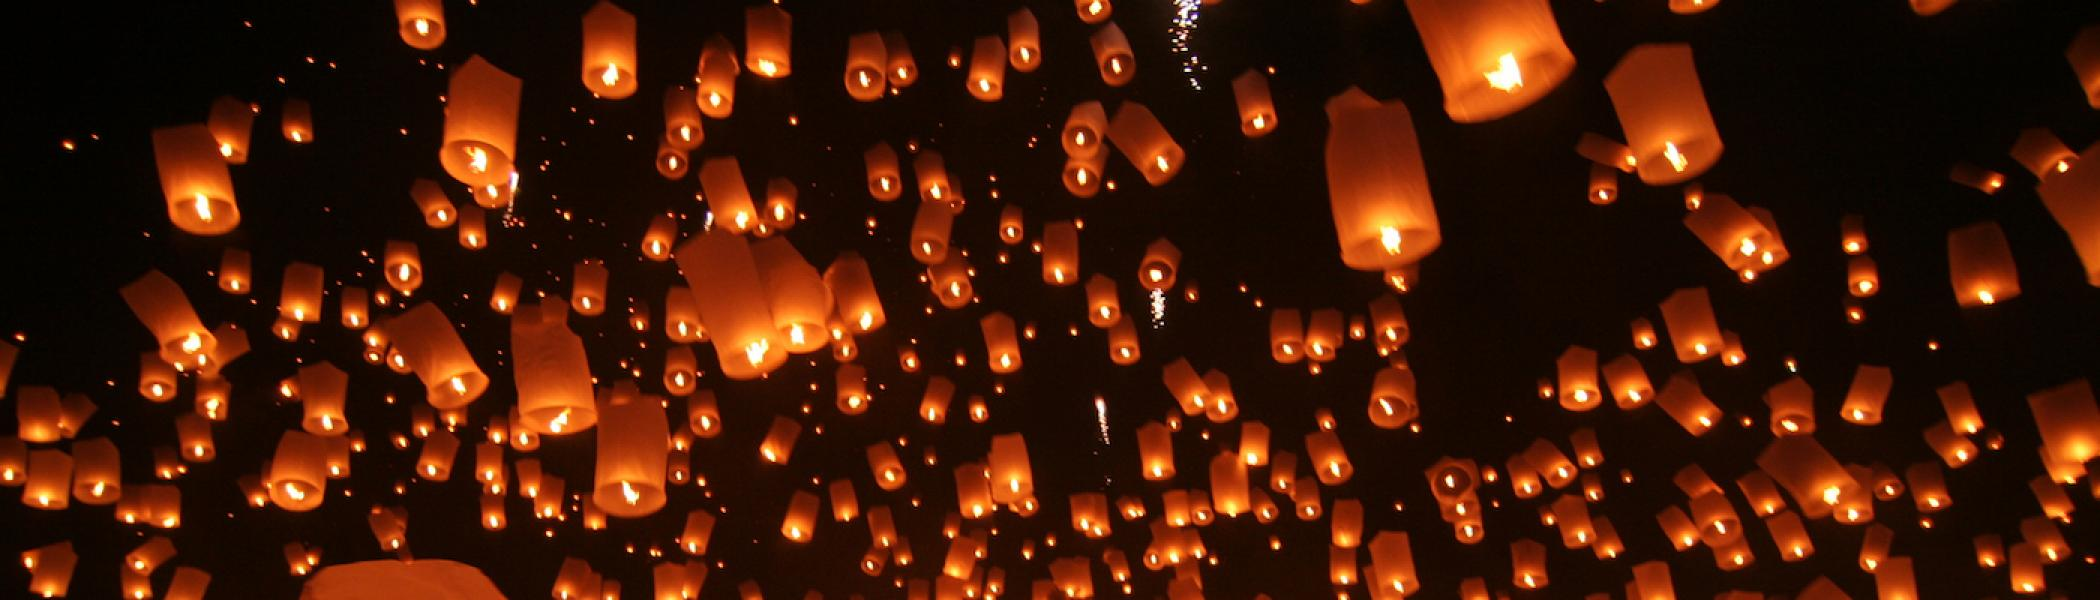 A bunch of lanterns being let go at night